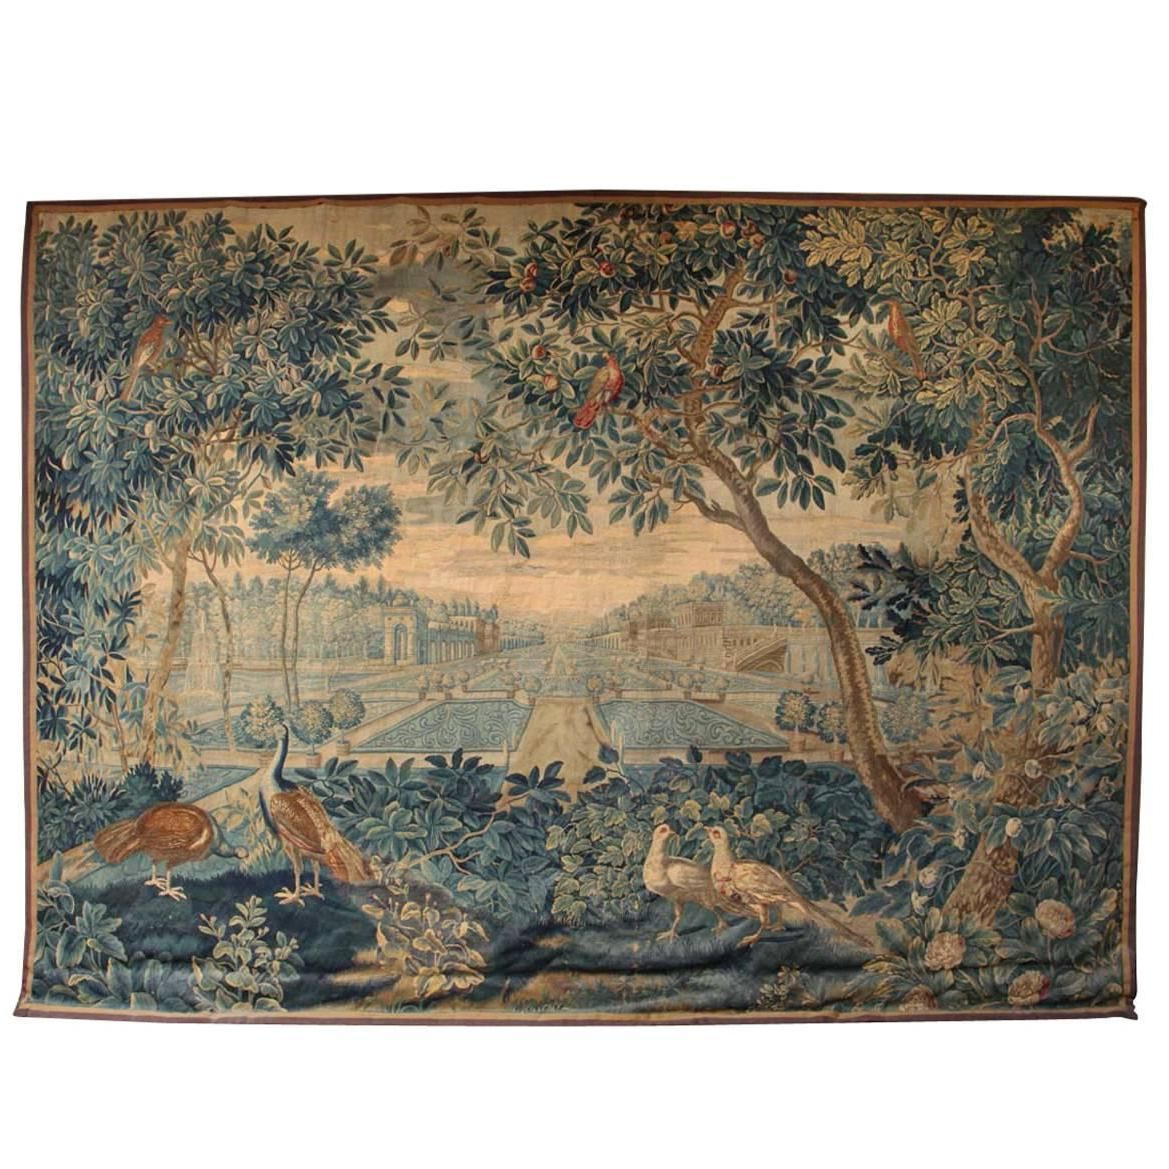 Preferred Blended Fabric Verdure Au Chateau Ii European Tapestries Intended For Rare 17th Century Brussels Tapestry With A View Of The (View 5 of 20)